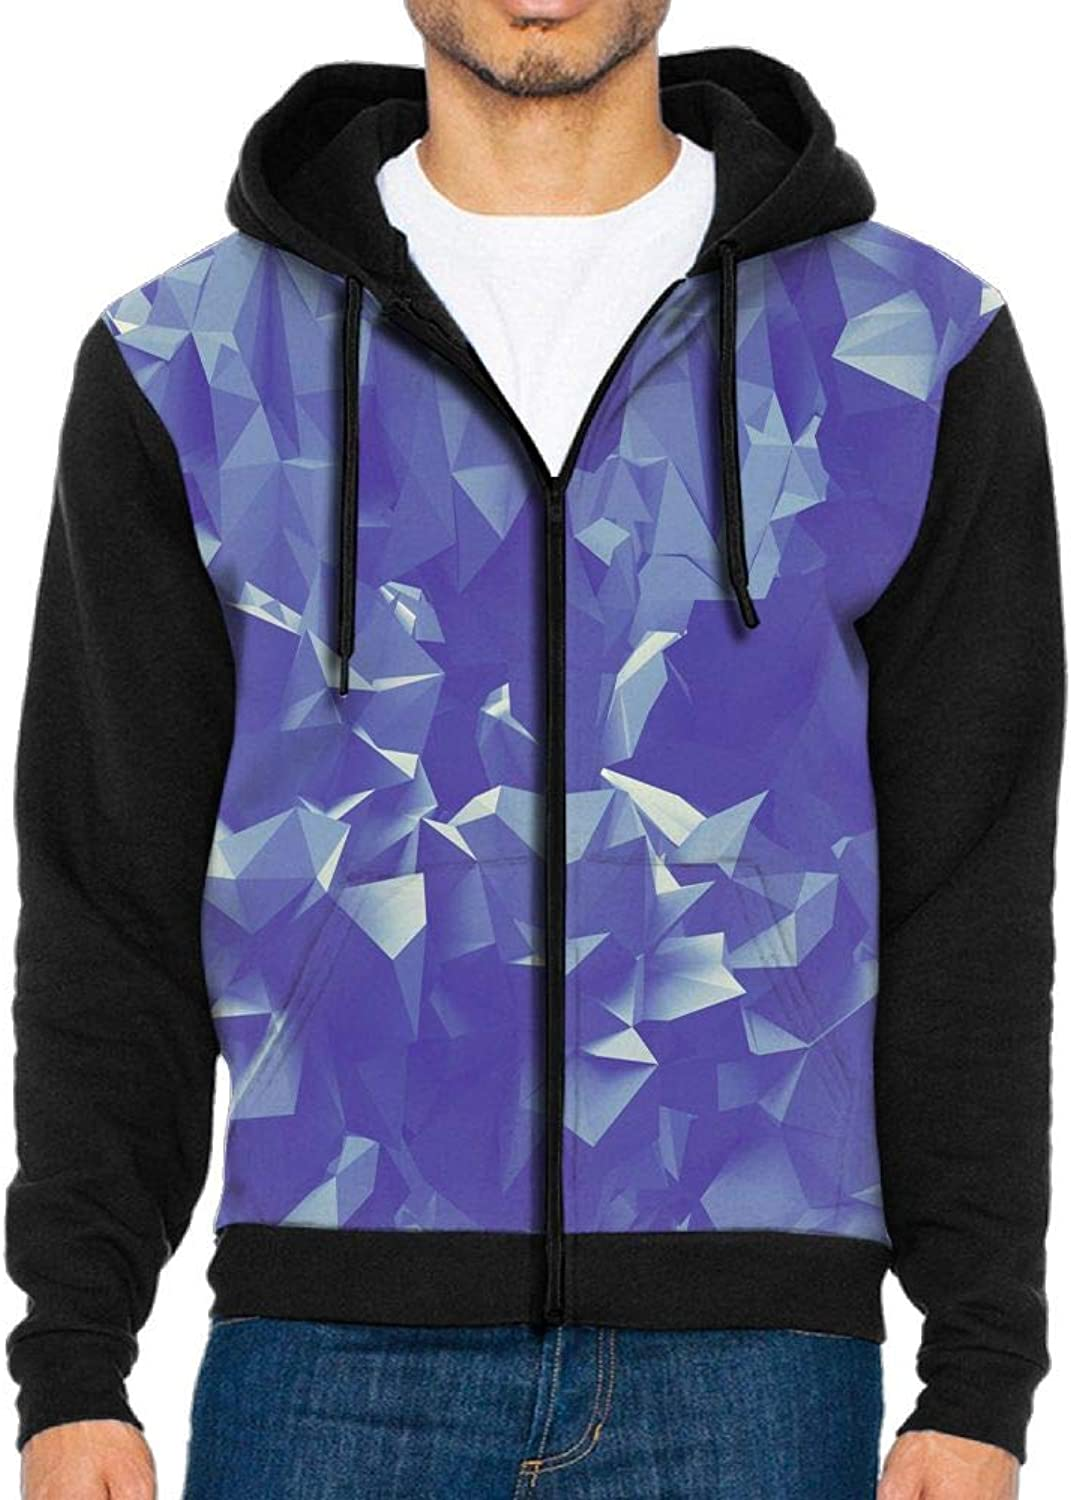 PIN Men's colorful Triangle Texture Pattern Hoodie Baseball Sweater